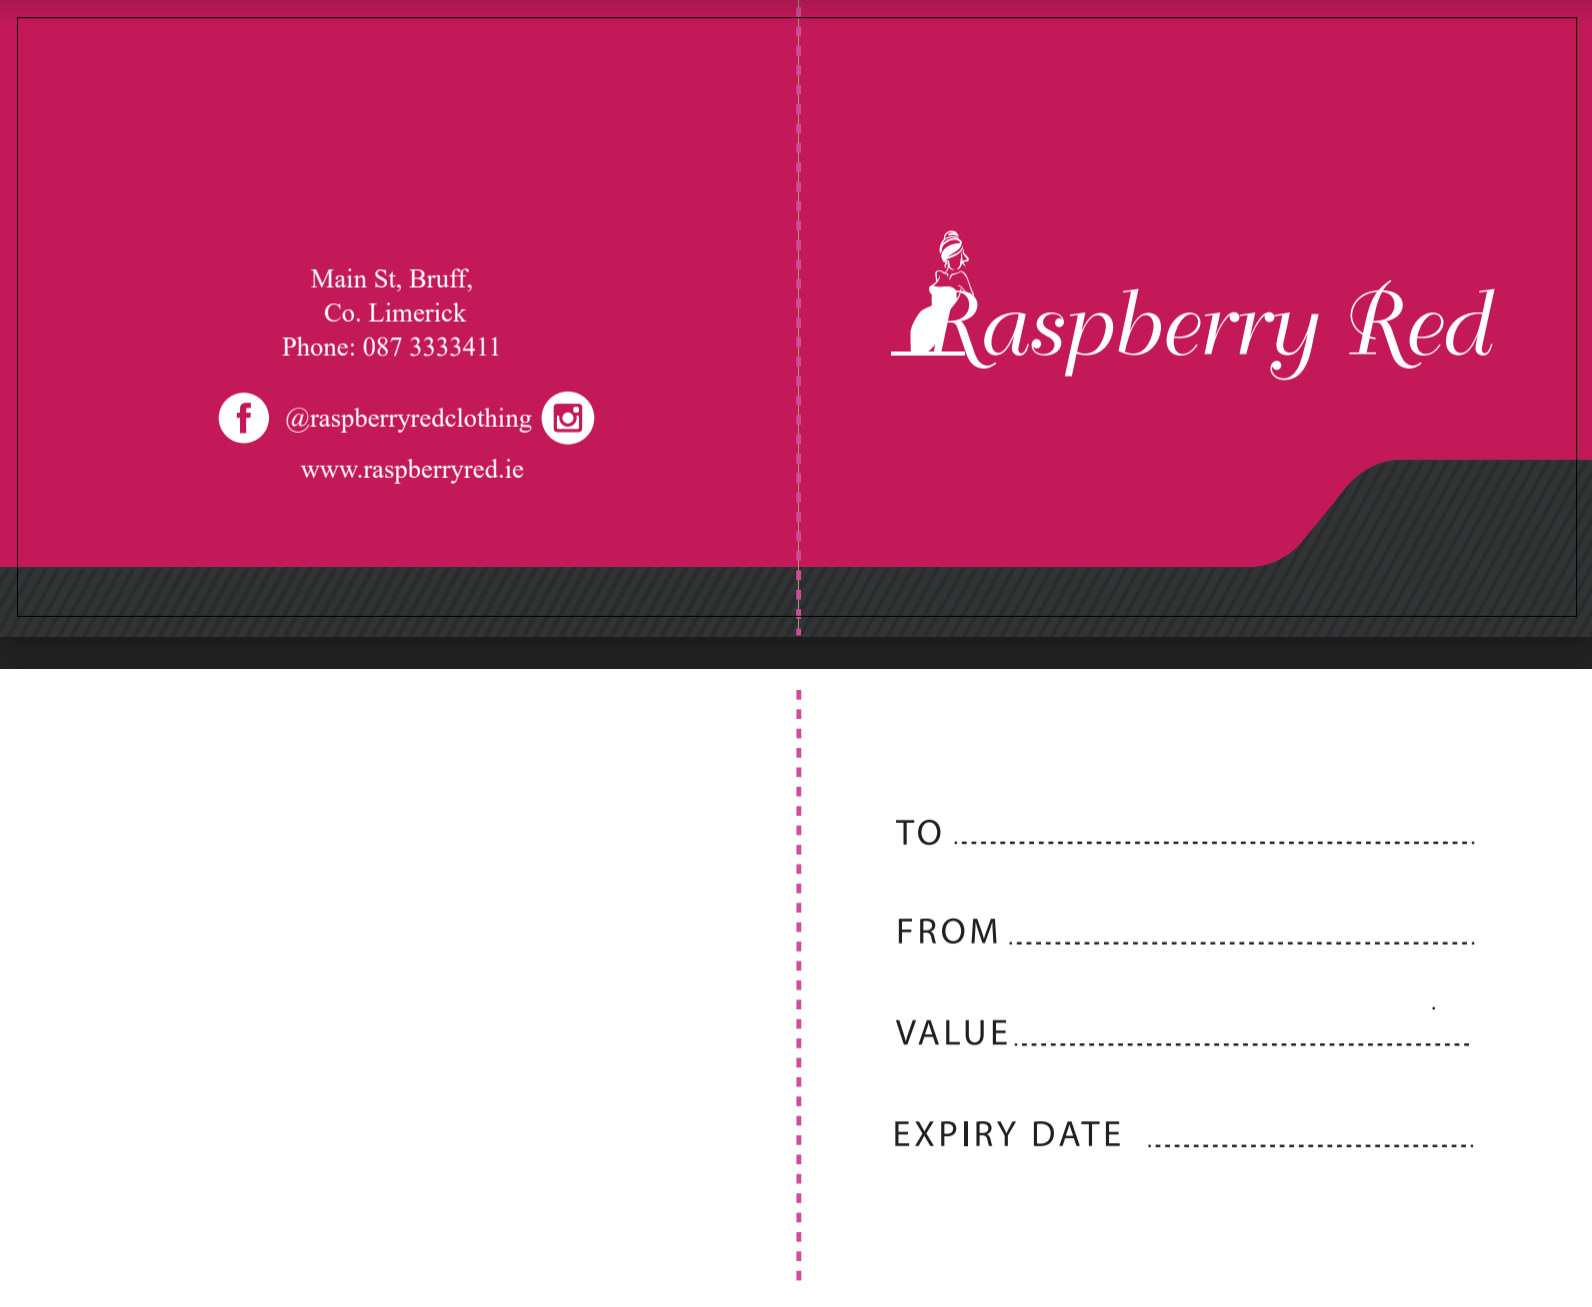 Raspberry Red Gift Card